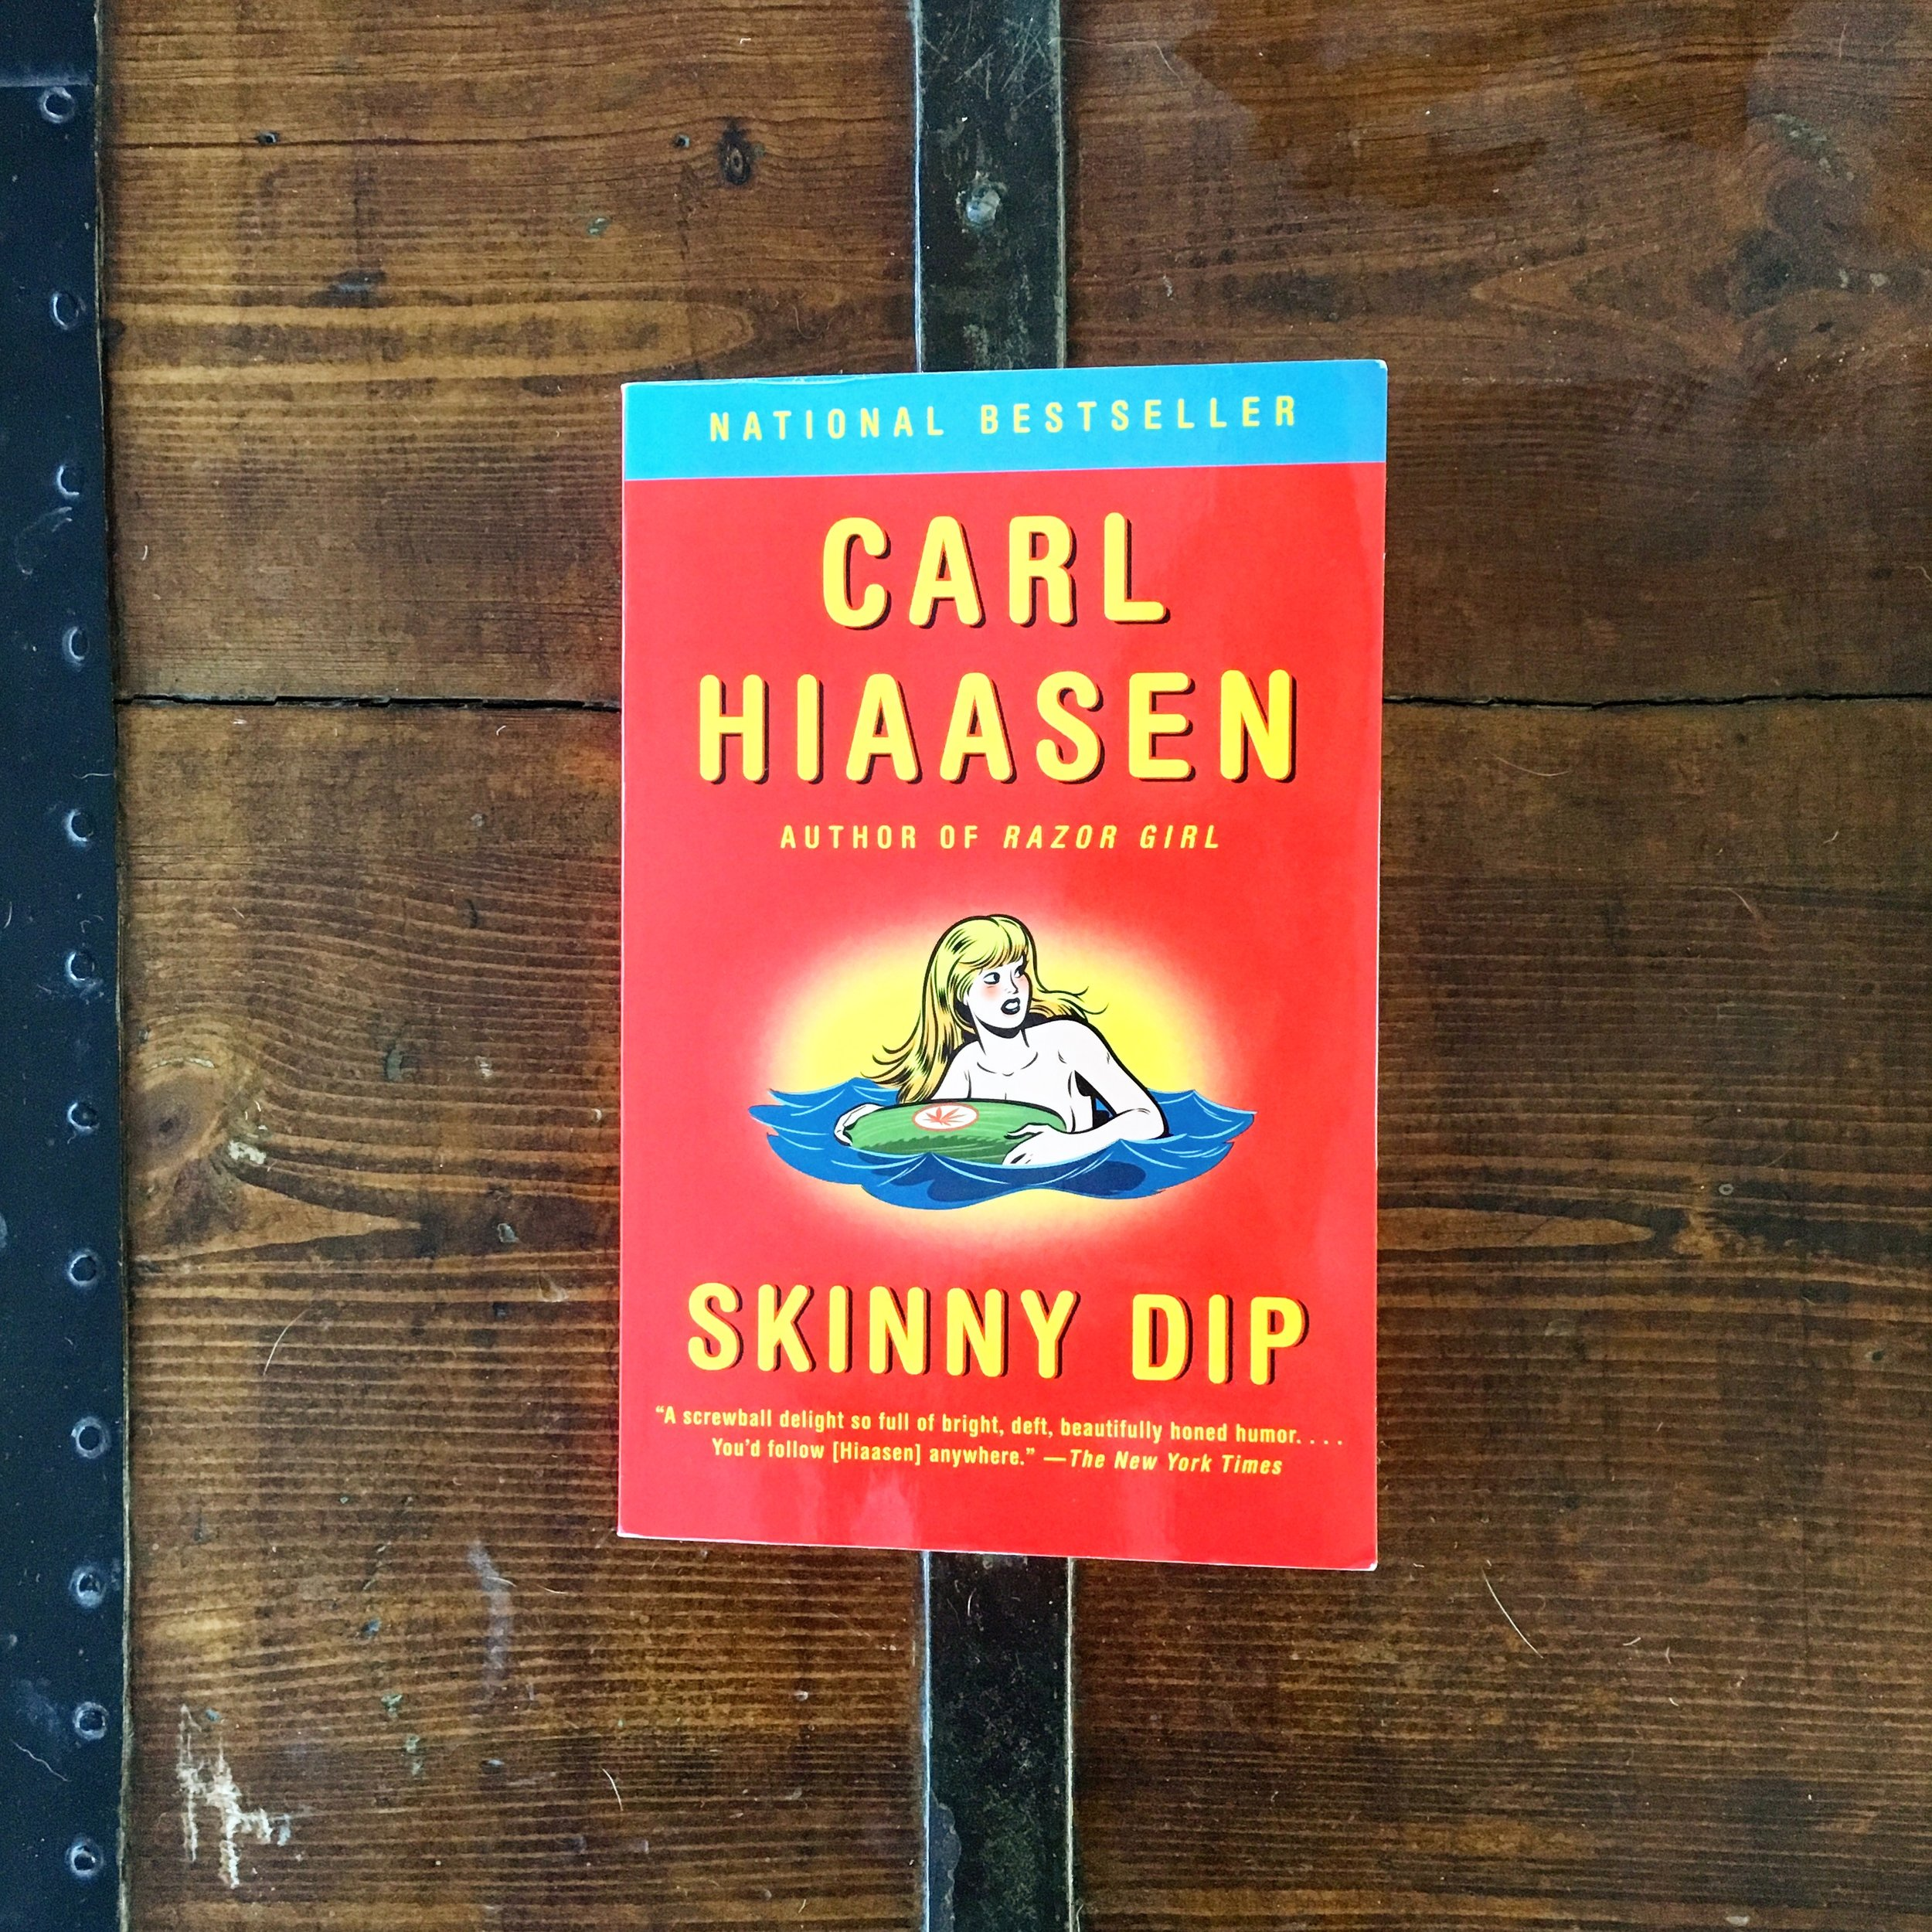 Skinny Dip by Carl Hiaasen - From My Wife